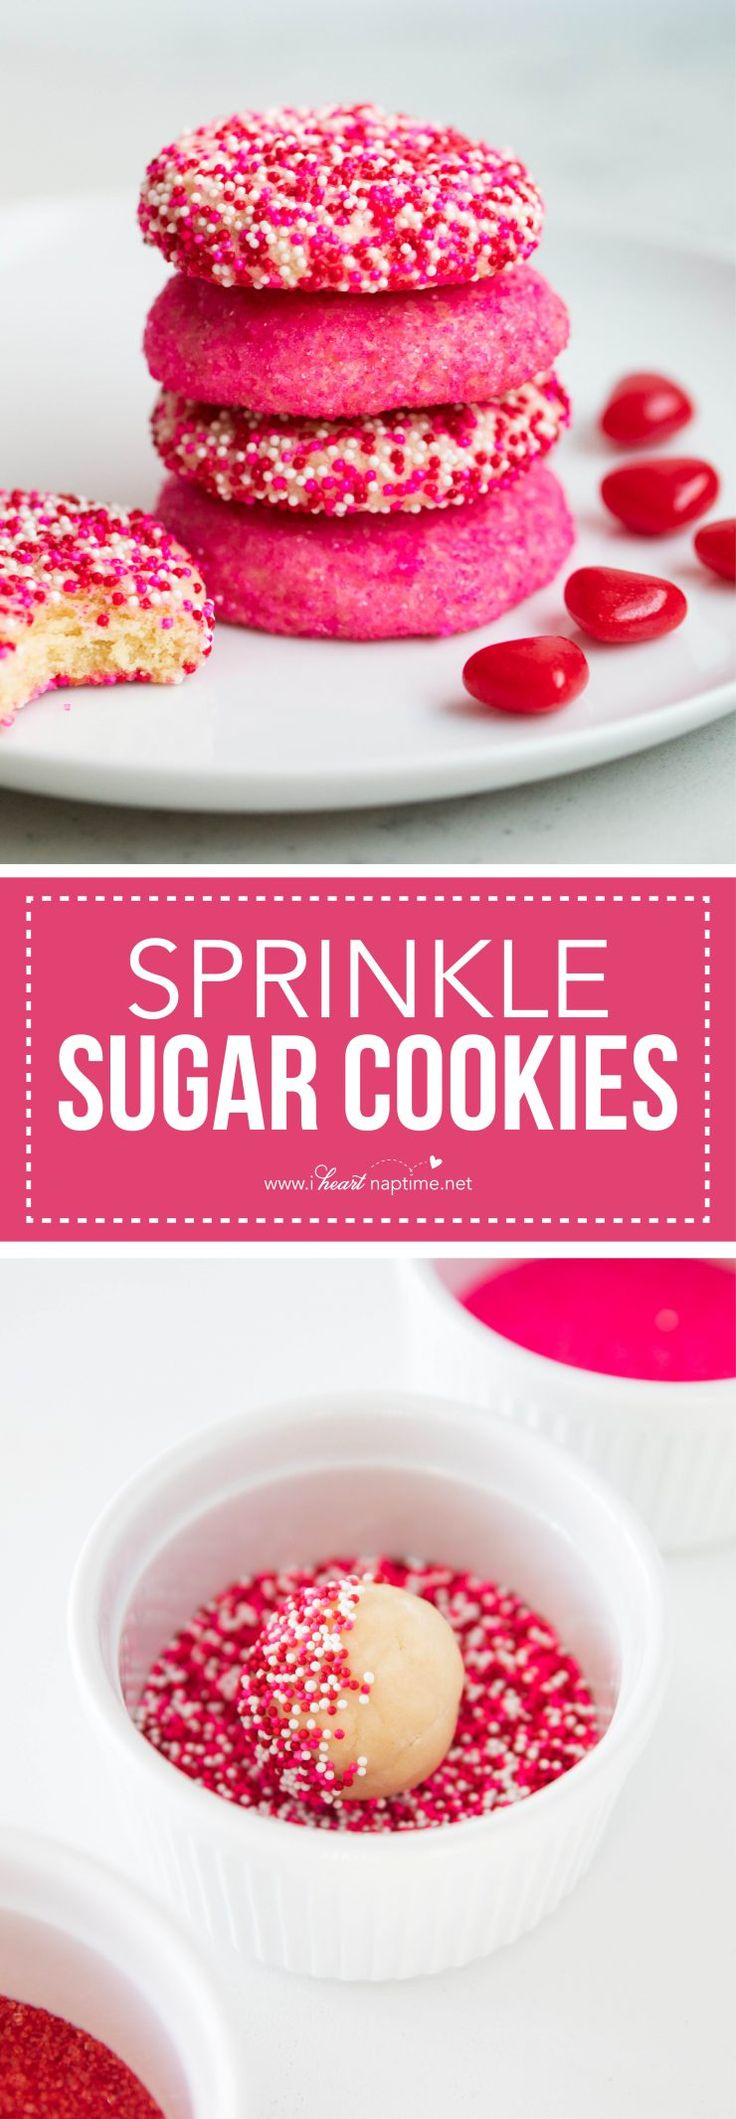 The easiest sugar cookie recipe -perfect for Valentine's Day! These sprinkle sugar cookies are super soft, tender on the inside and deliciously sweet. Much easier than cut out cookies!